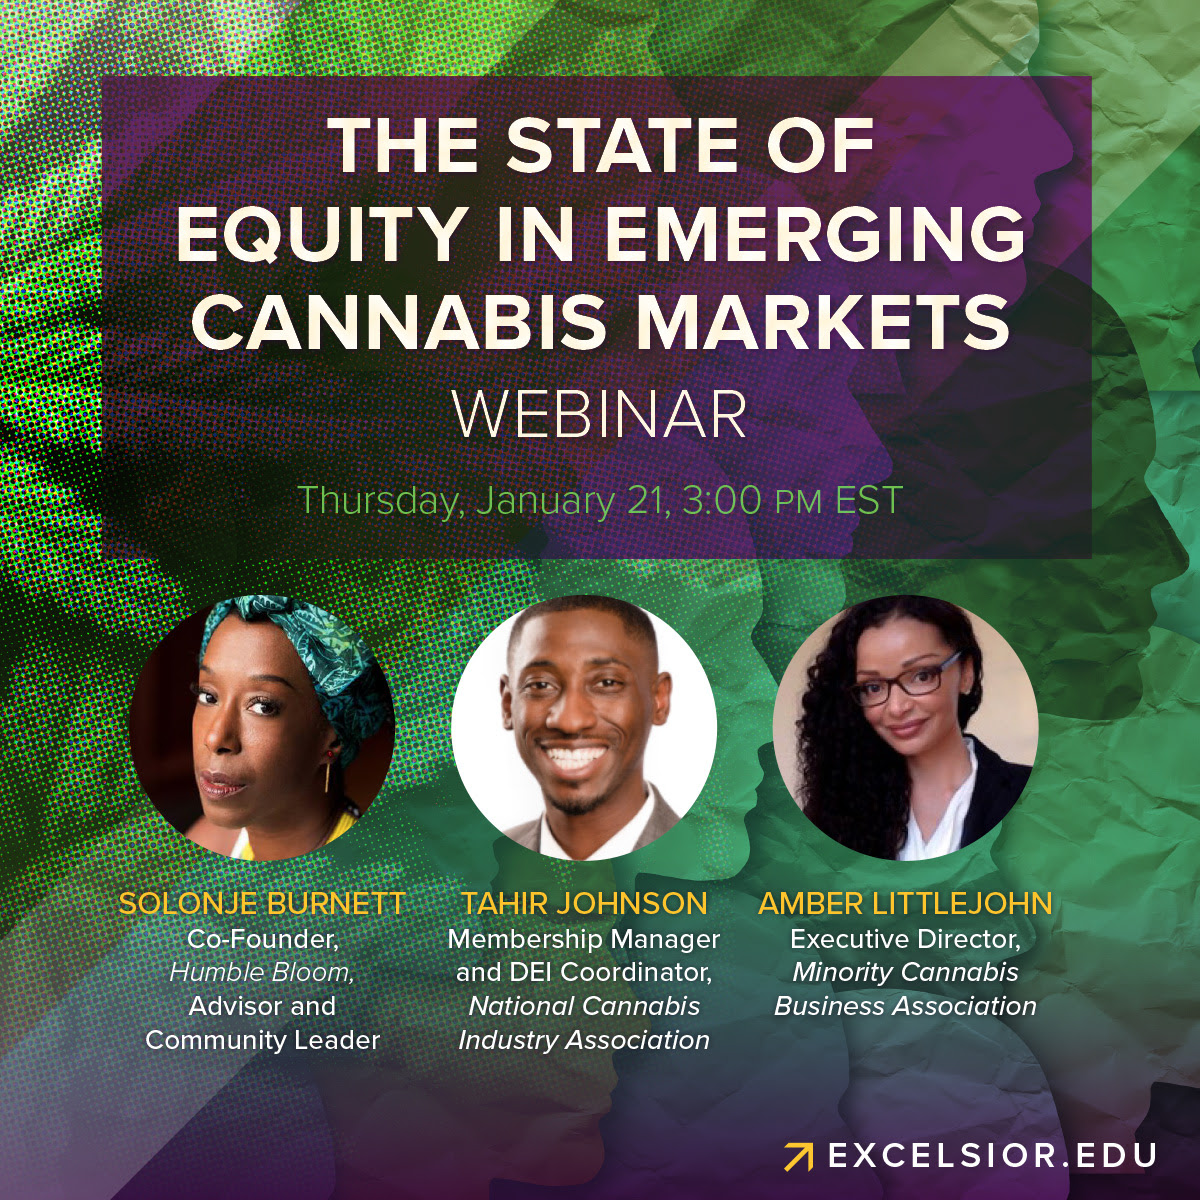 State of Cannabis Equity Roundtable (online) January 21 2021